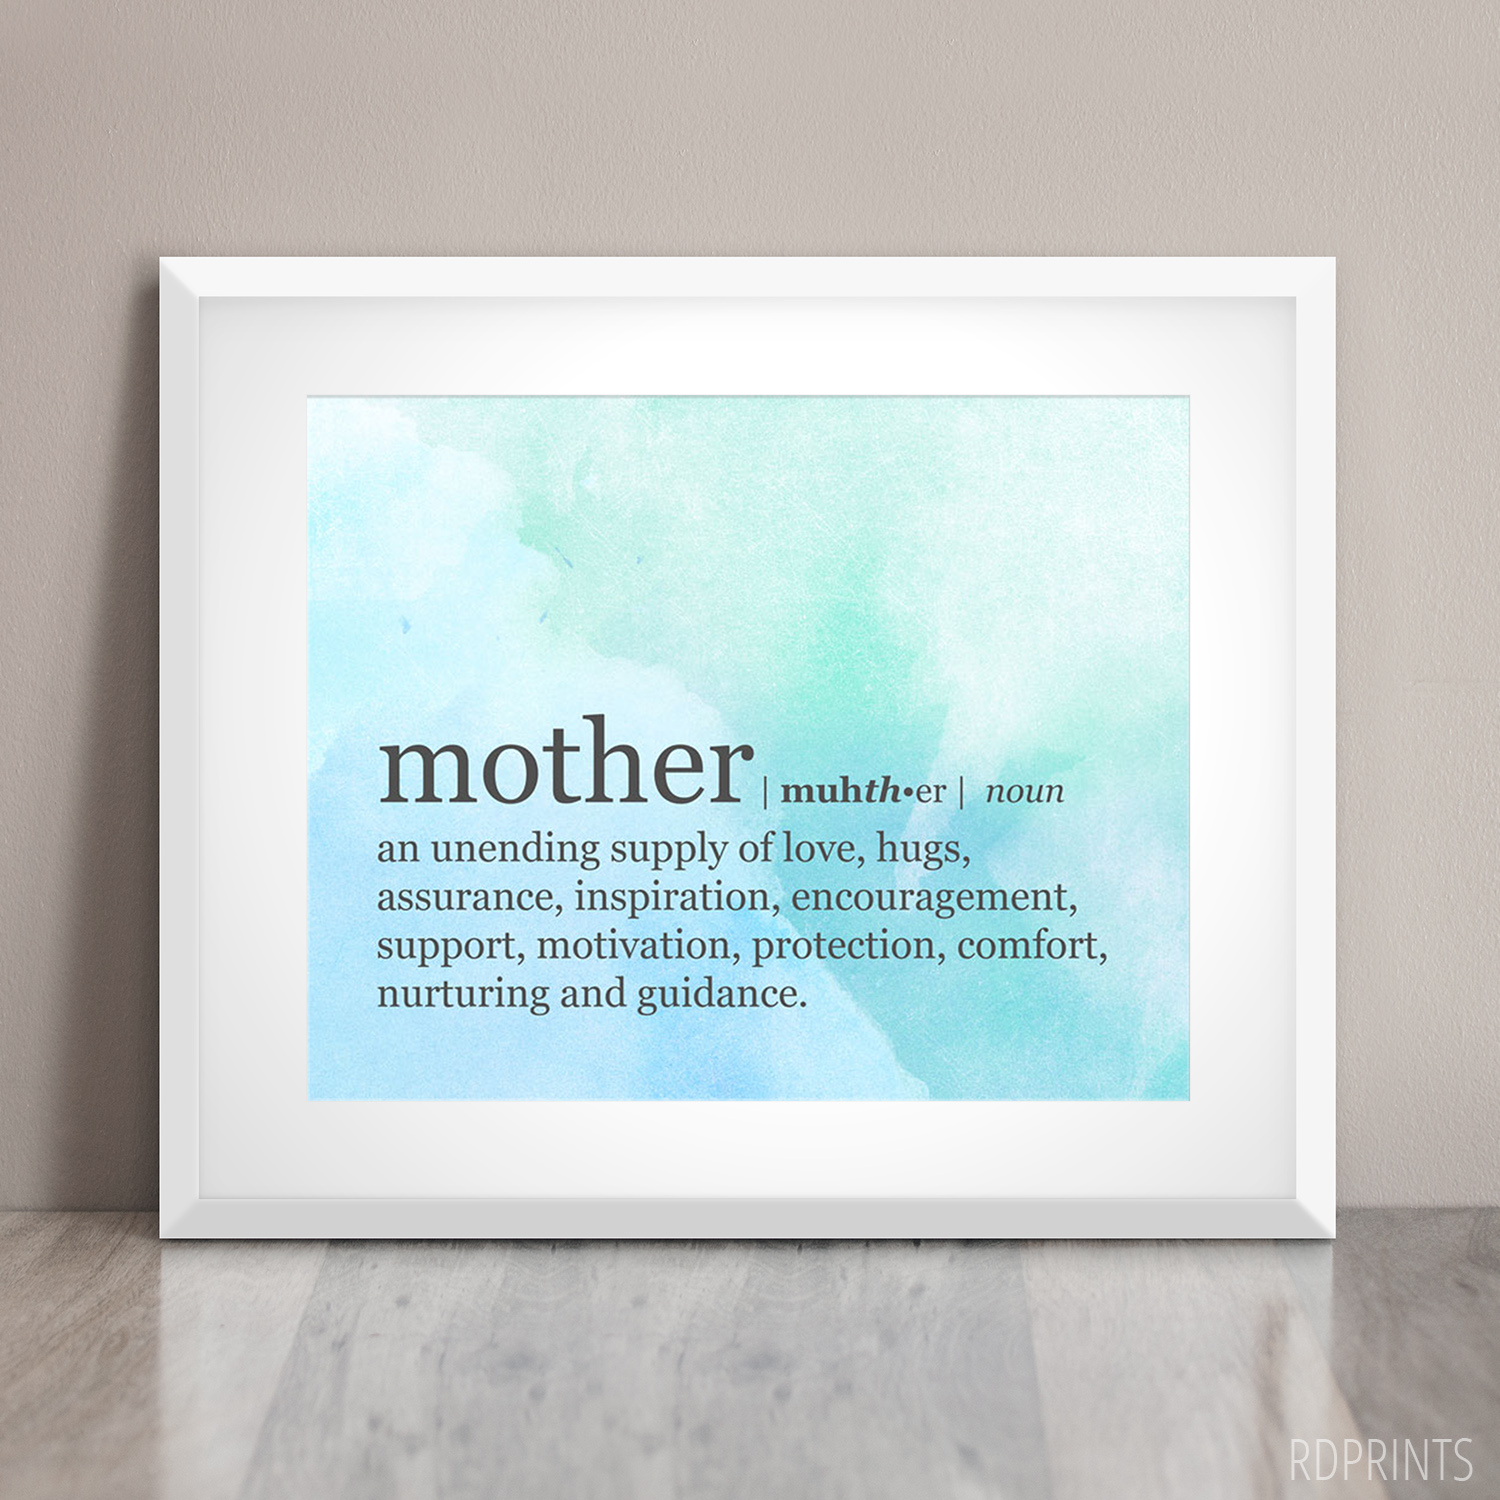 mothers day quote | rdprints on etsy